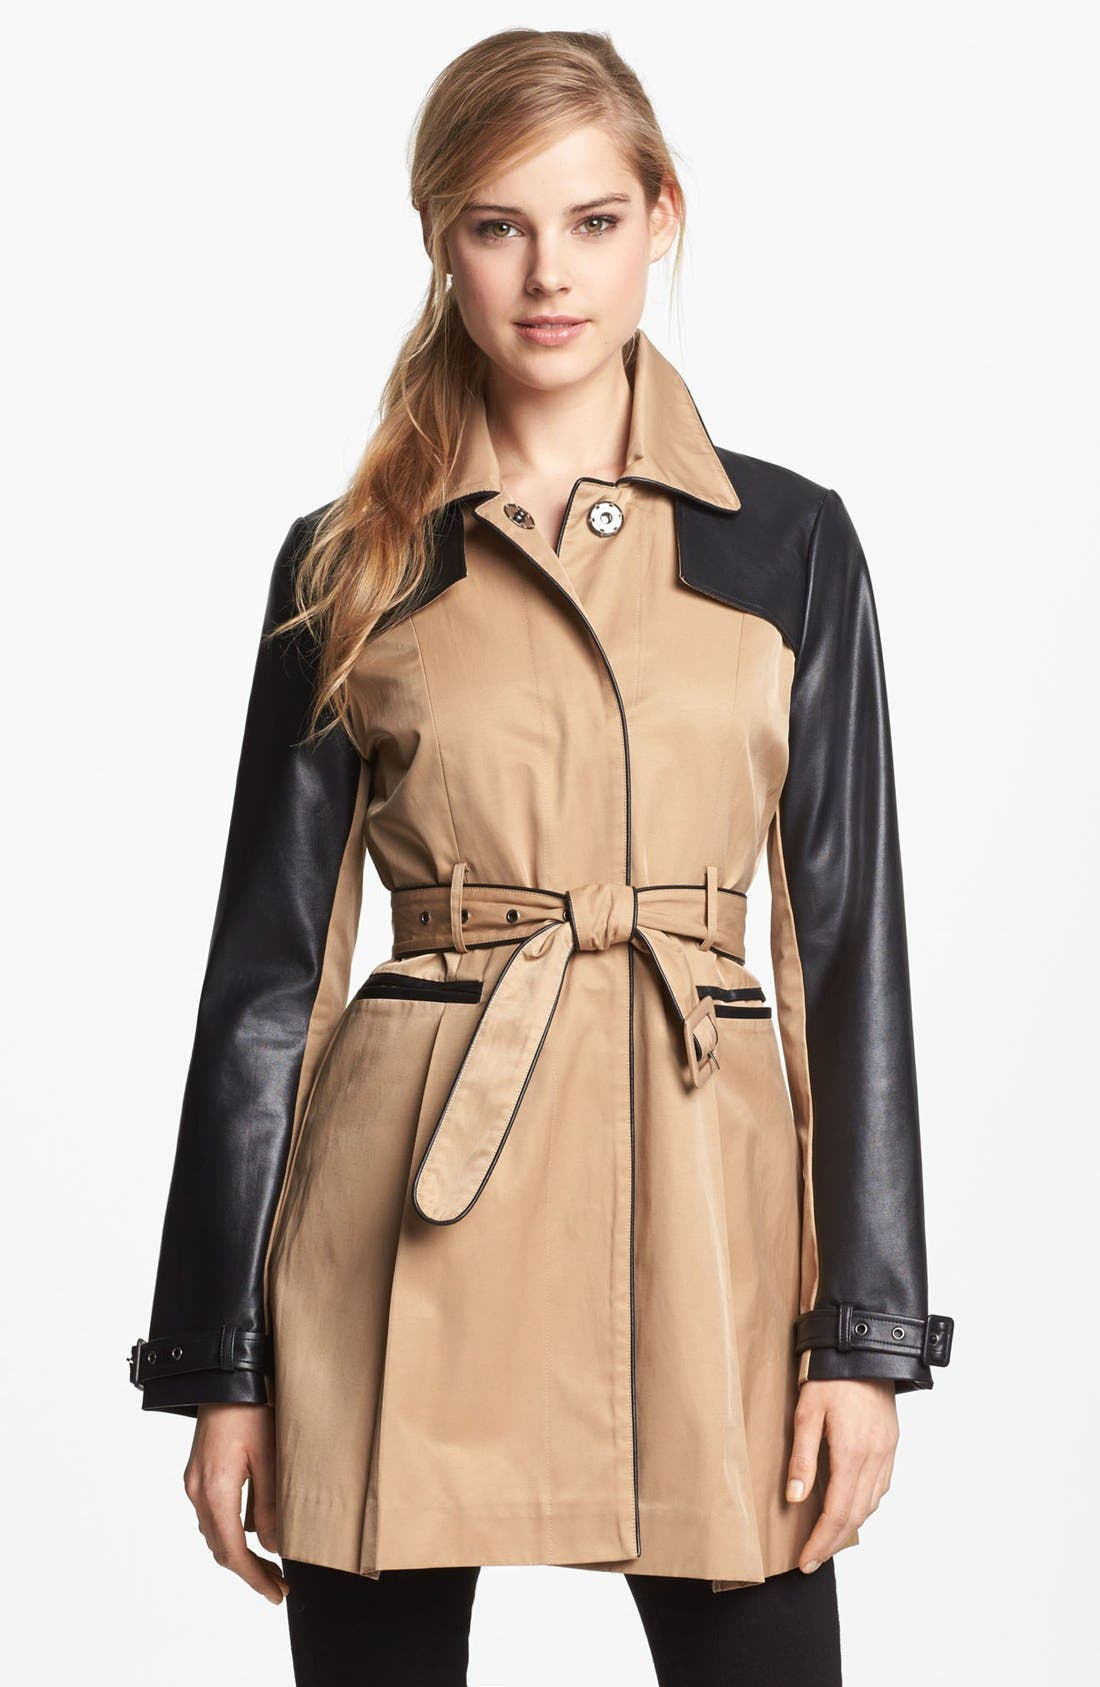 BEBE, Faux Leather Trim Trench Coat, Main thumbnail 1, color, 250